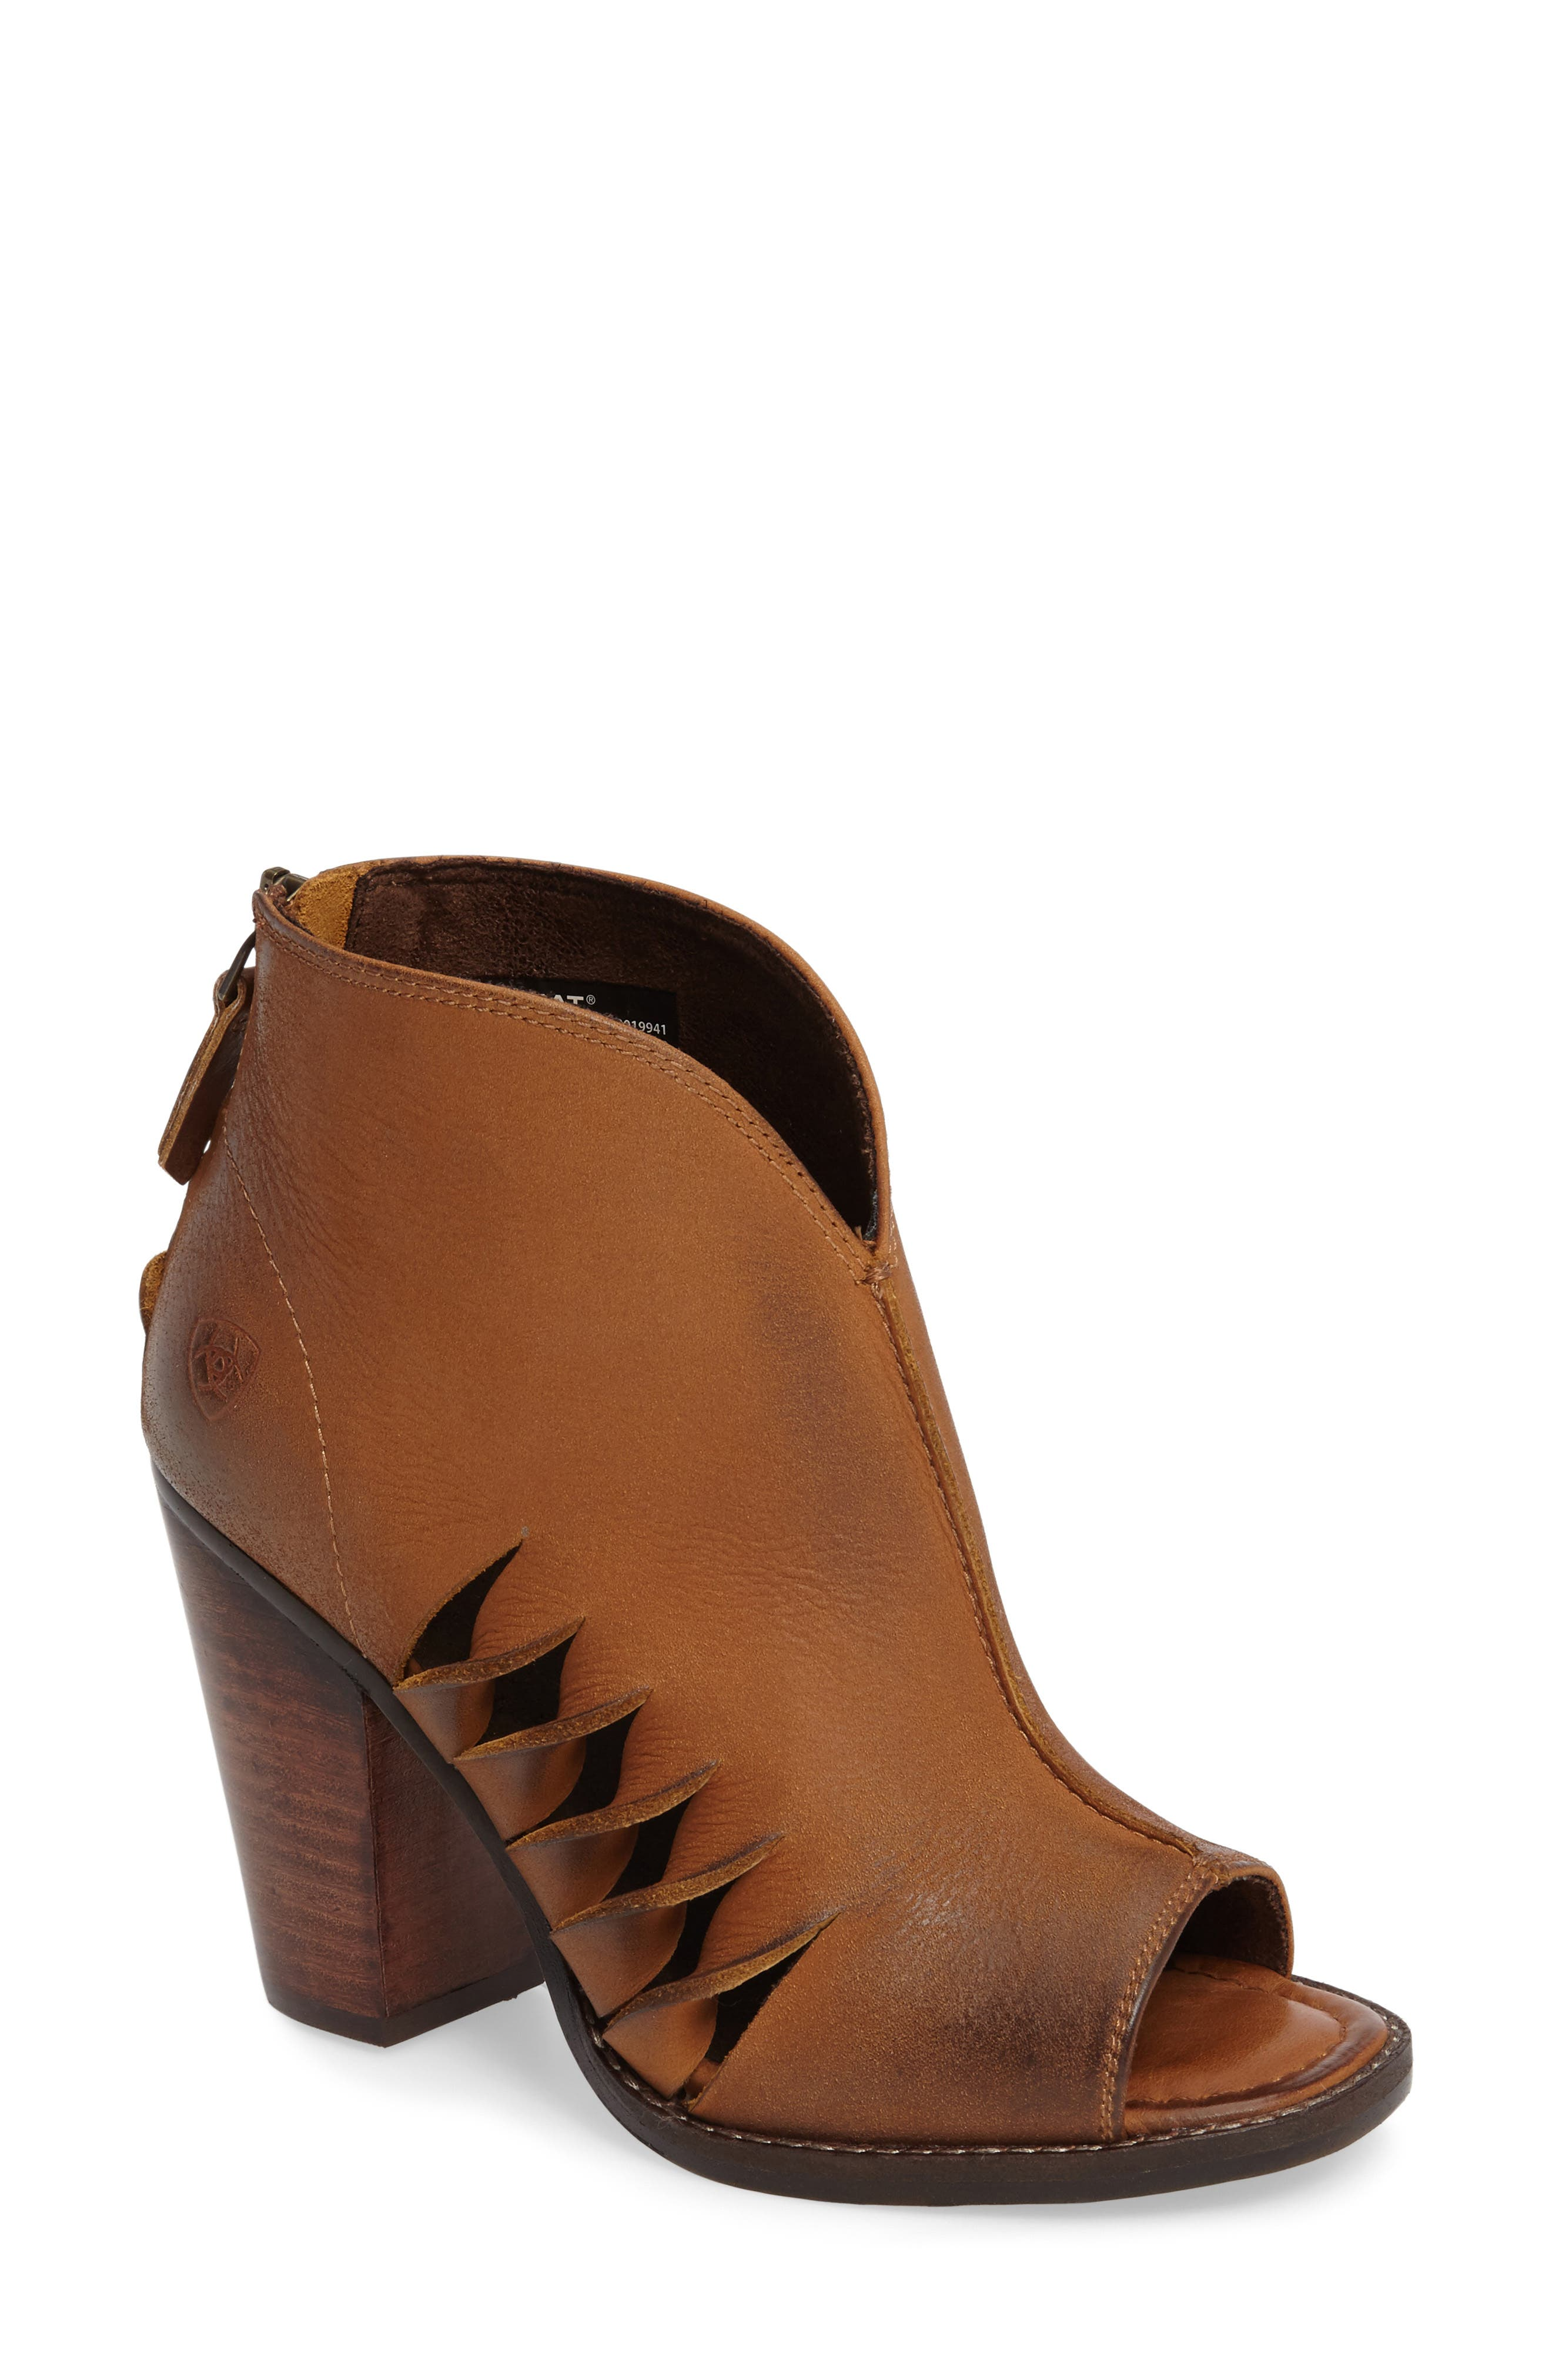 Lindsley Peep Toe Bootie,                             Main thumbnail 1, color,                             Tennessee Tan Leather